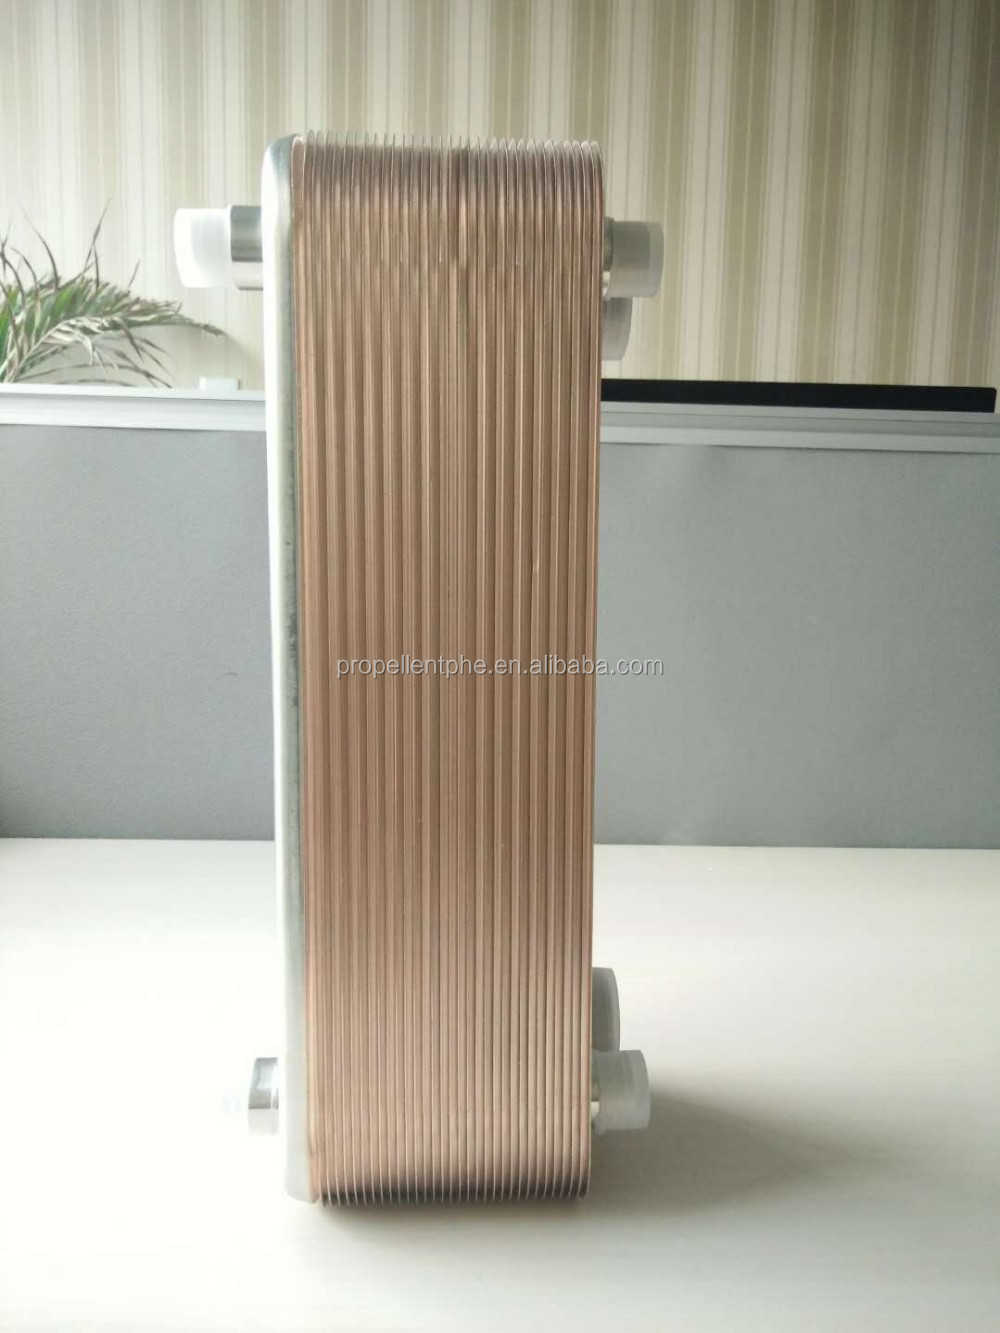 Brazed plate heat exchanger for refrigeration equipment, Brazed heat exchanger